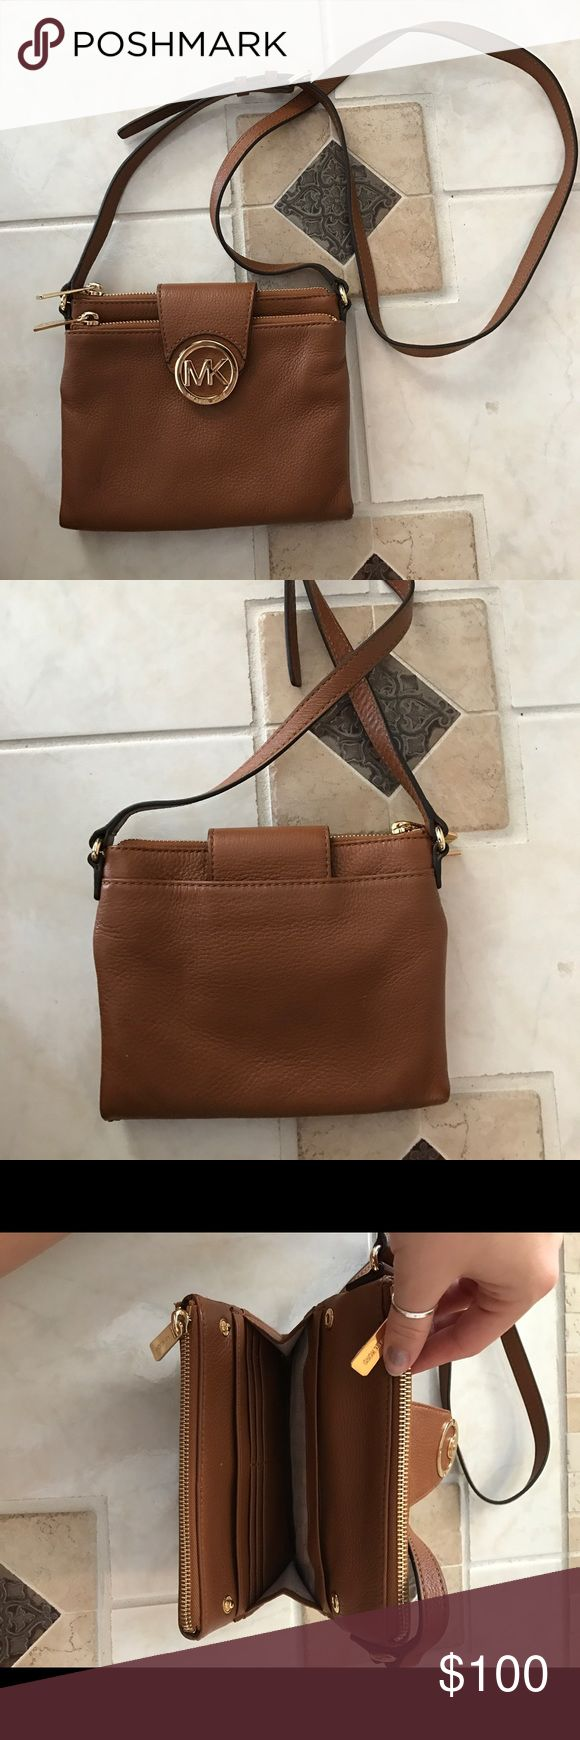 Michael Kors Fulton Crossbody This was my favorite bag because of the soft leather, just no longer my style. Has two spots with zippers that hold a lot then card spots in the middle for easy access. Kept in great condition Michael Kors Bags Crossbody Bags